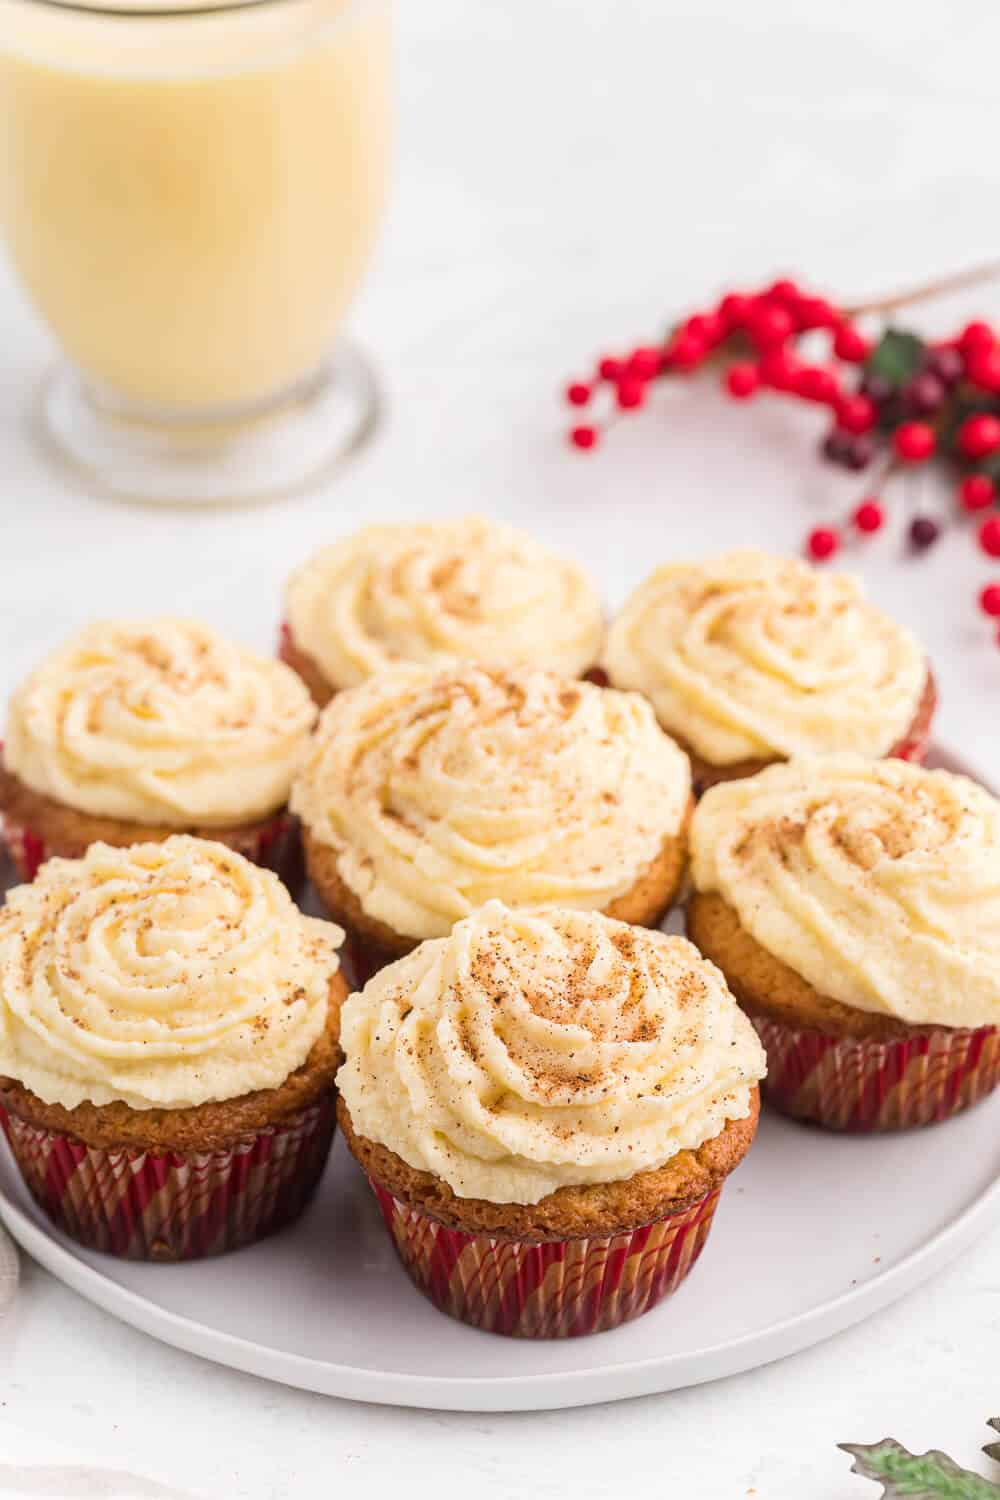 Eggnog cupcakes on a white plate